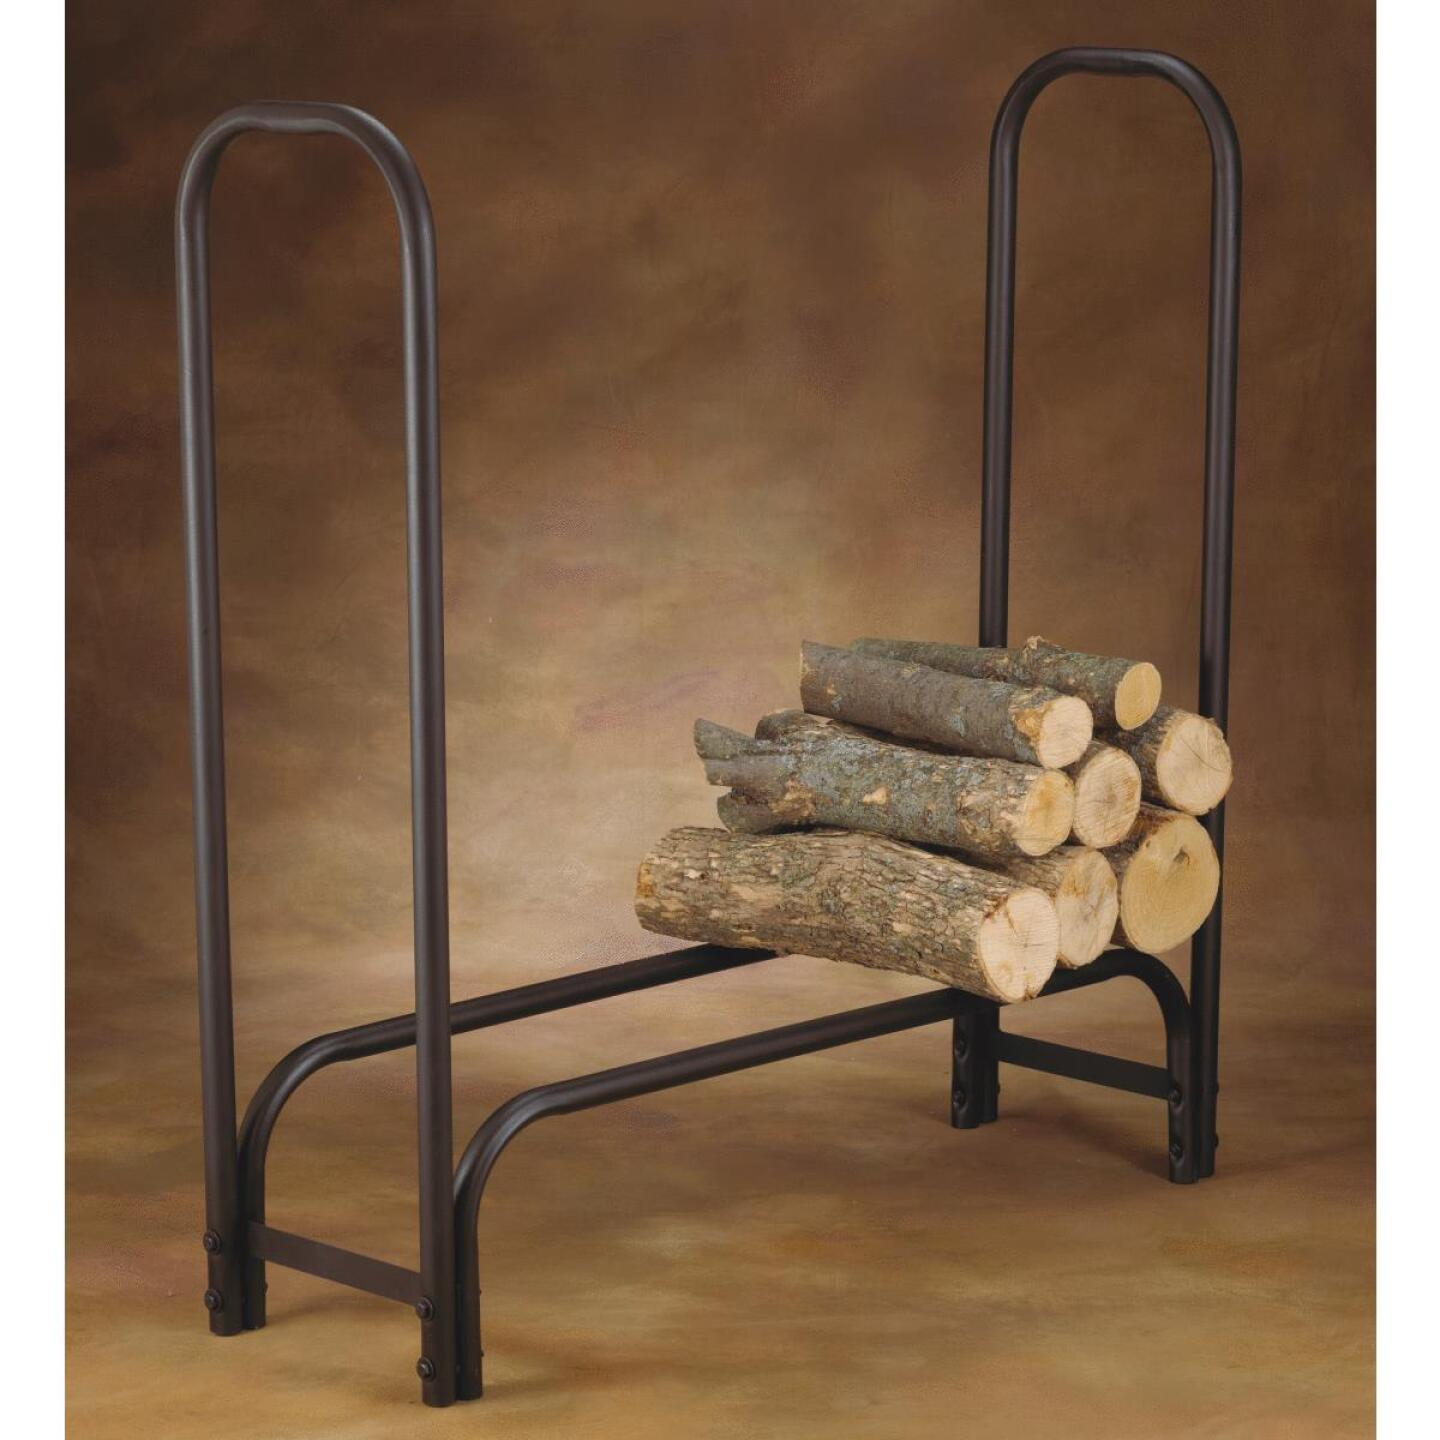 Home Impressions 4 Ft. Black Tubular Log Rack Image 2